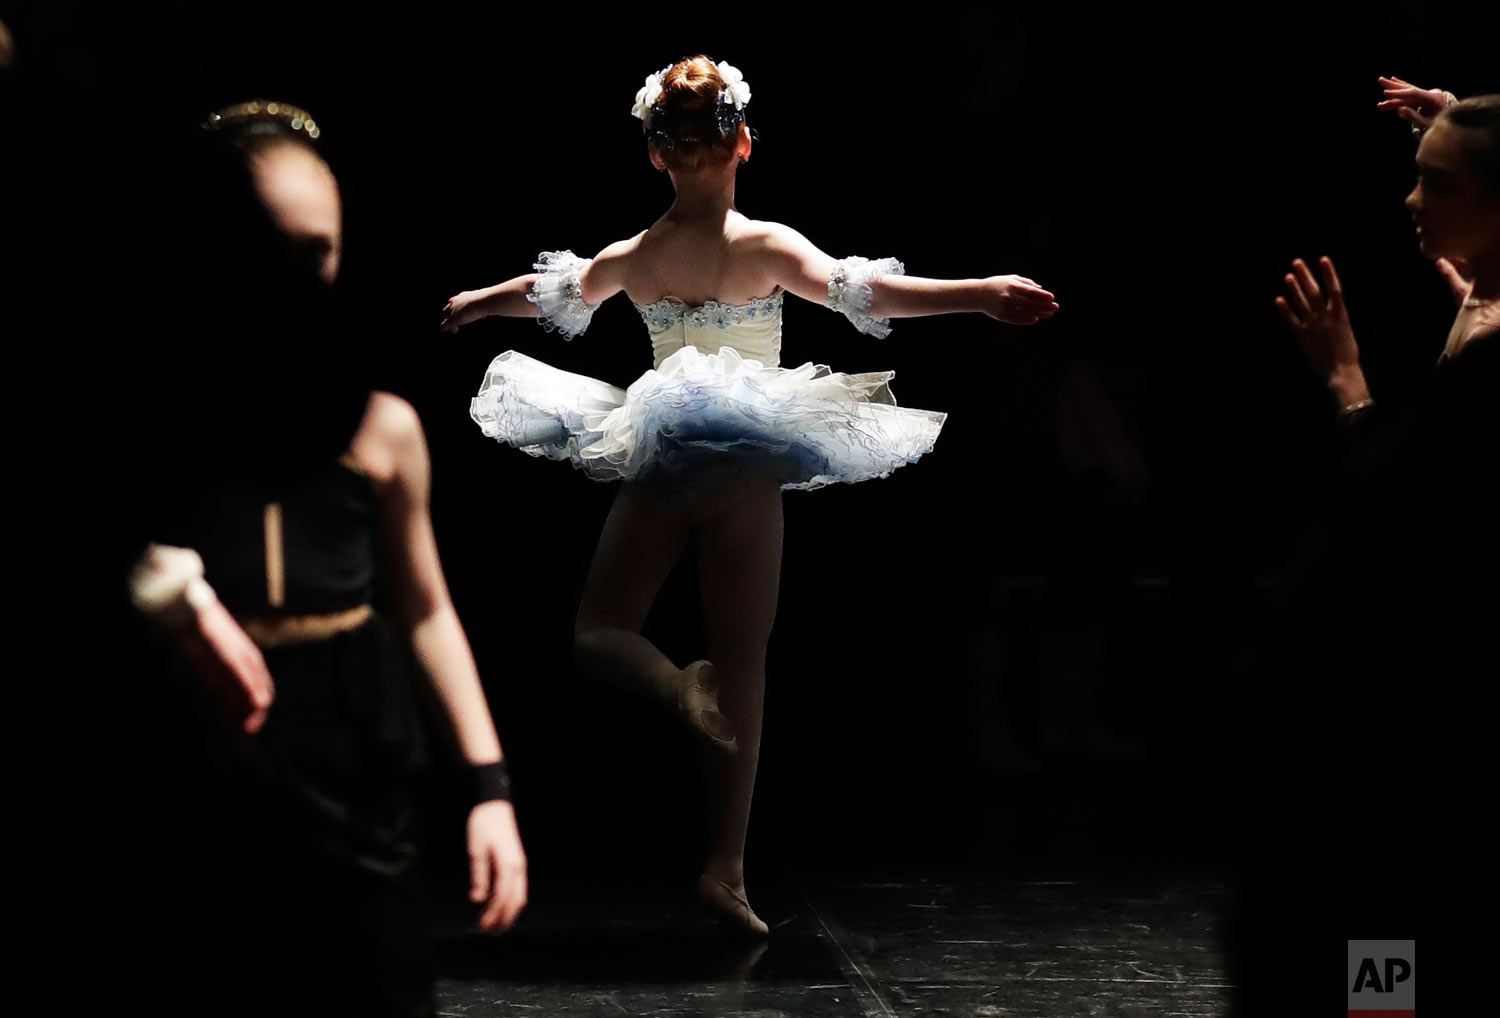 Fallon Tewell, center, and other young dancers warm up for the Youth America Grand Prix North America regional semi-finals in River Forest, Ill. (AP Photo/Nam Y. Huh)